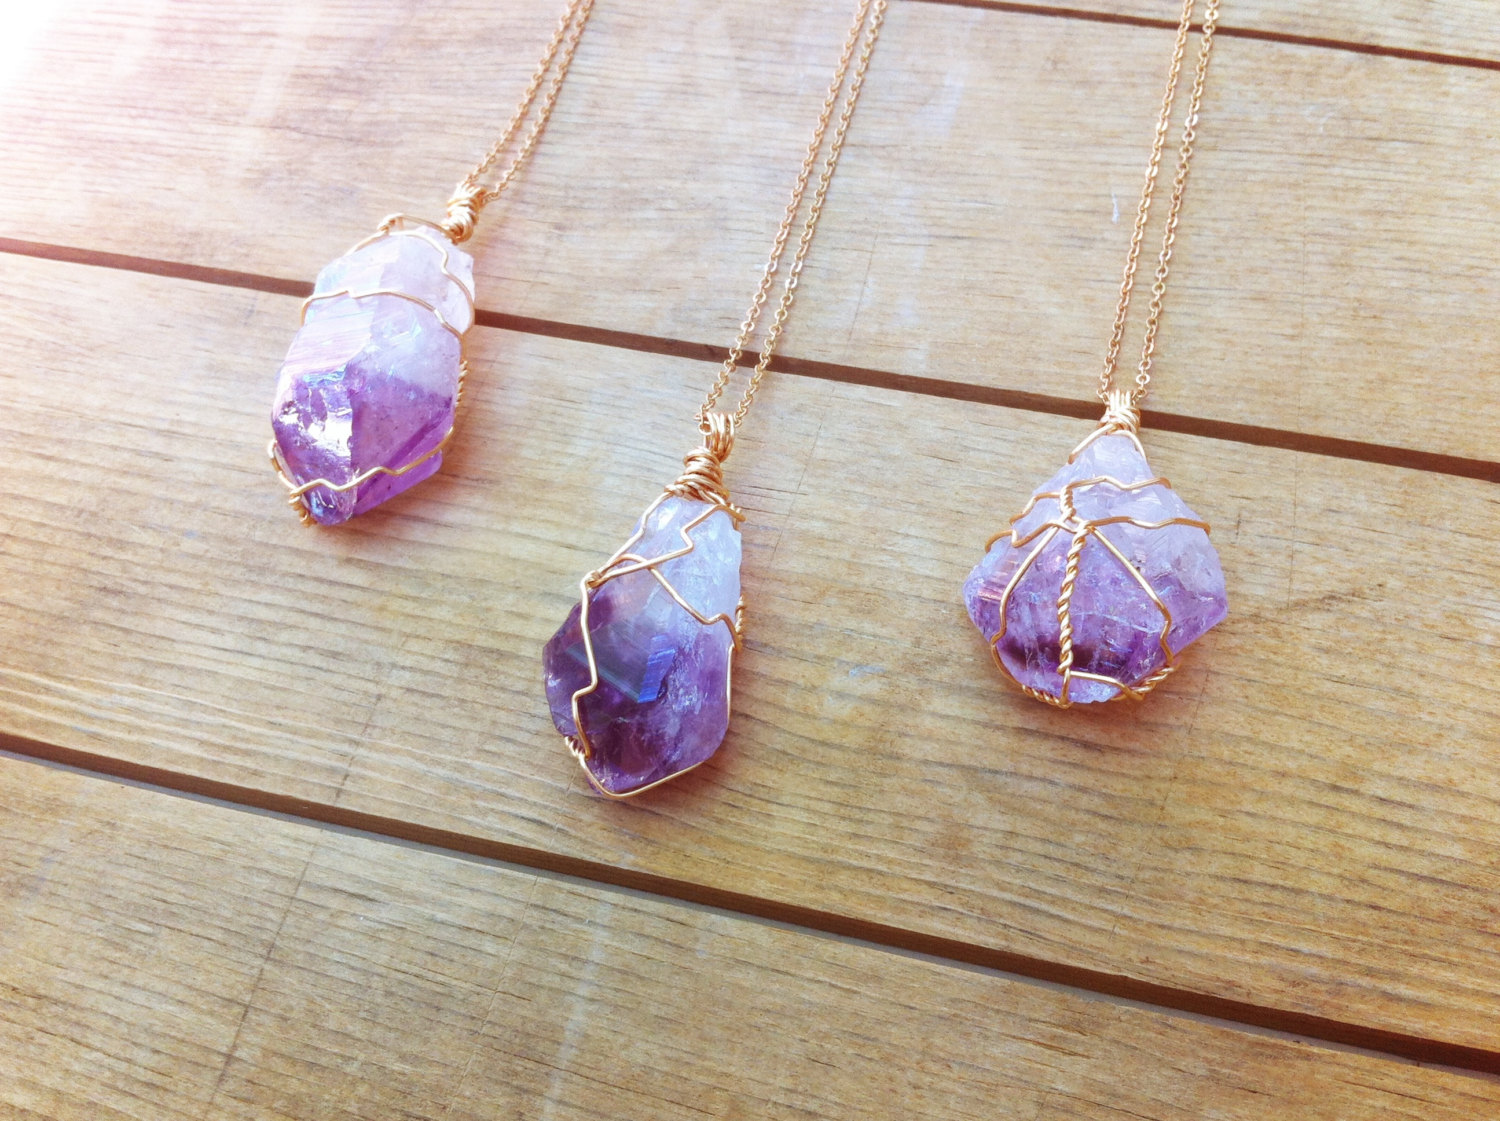 pendant products raw necklace rose taiga amethyst